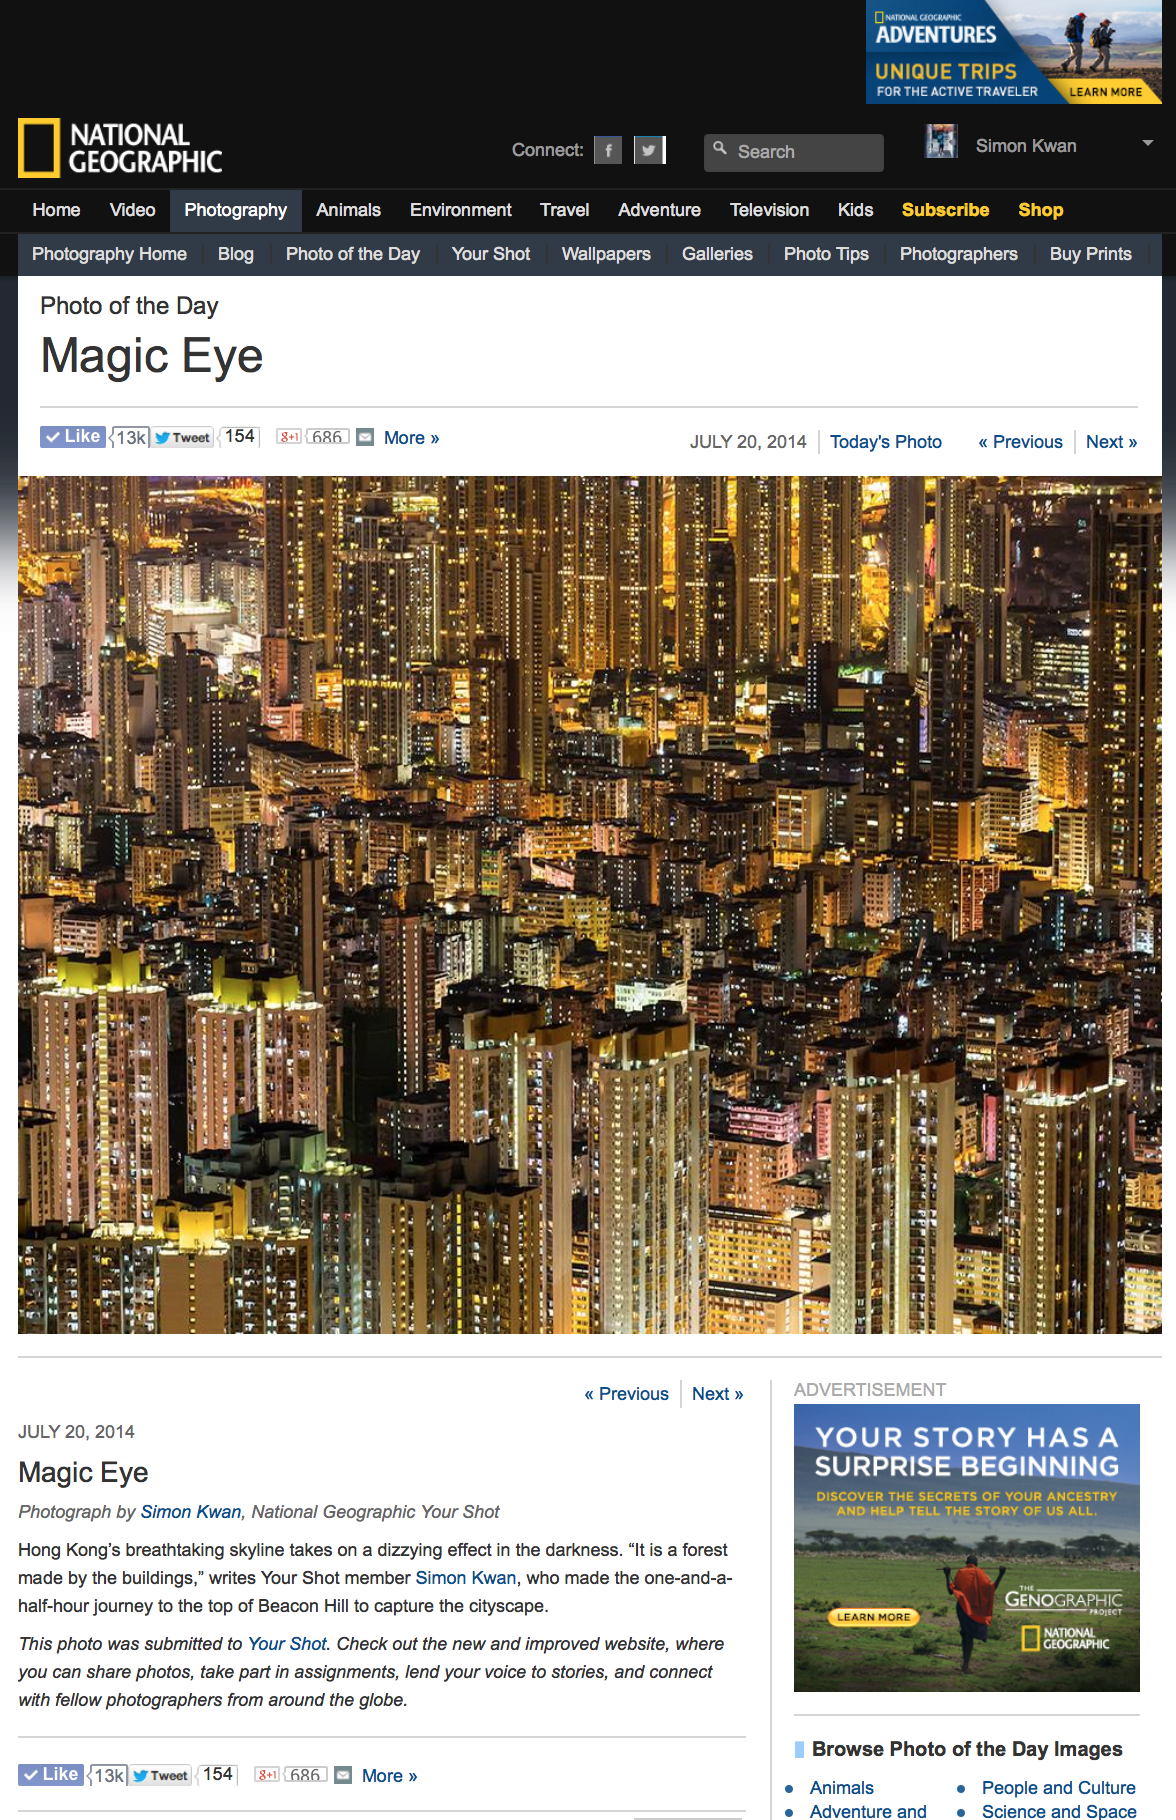 """""""Magic Eye""""   National Geographic - """"Photo of the Day""""  20th July .2014  National Geographic International Website  http://photography.nationalgeographic.com/photography/photo-of-the-day/architecture-night-hong-kong/"""